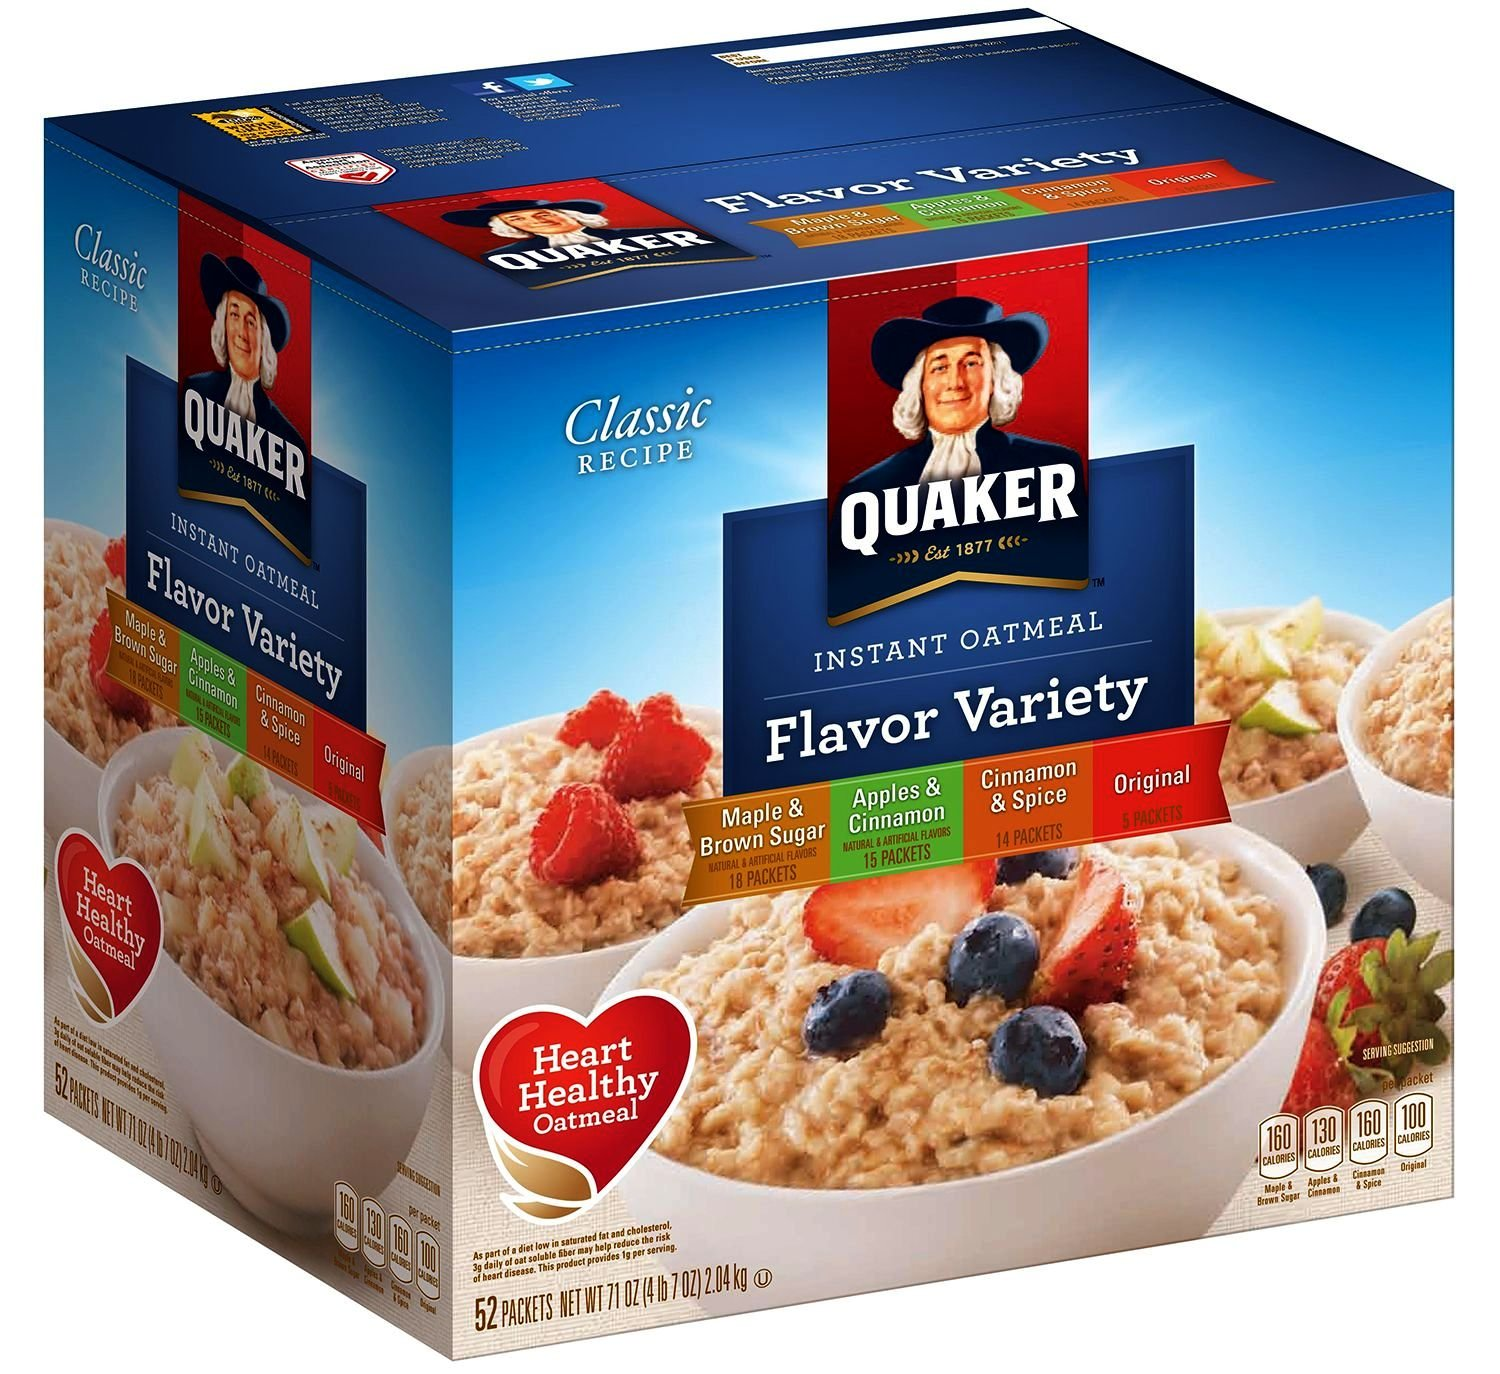 Quaker instant oatmeal, flavor multi 52-pack, maple brown sugar, apple cinnamon, cinn spice, original 71oz Box